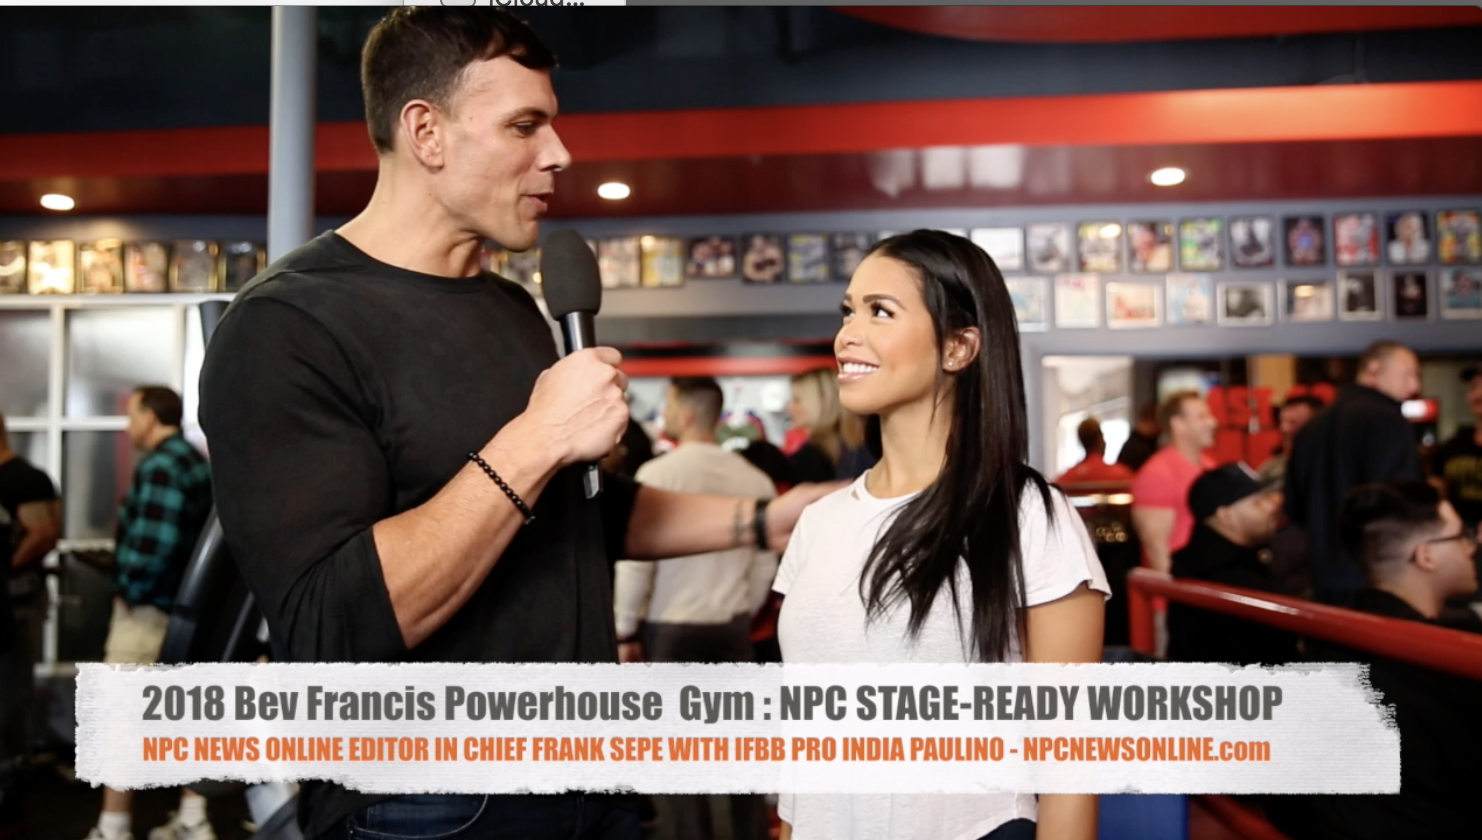 IFBB Bikini Pro India Paulino Interviewed By NPC News Online Editor In Chief Frank Sepe at the 2018 Bev Francis Powerhouse Gym NPC Stage Ready Workshop